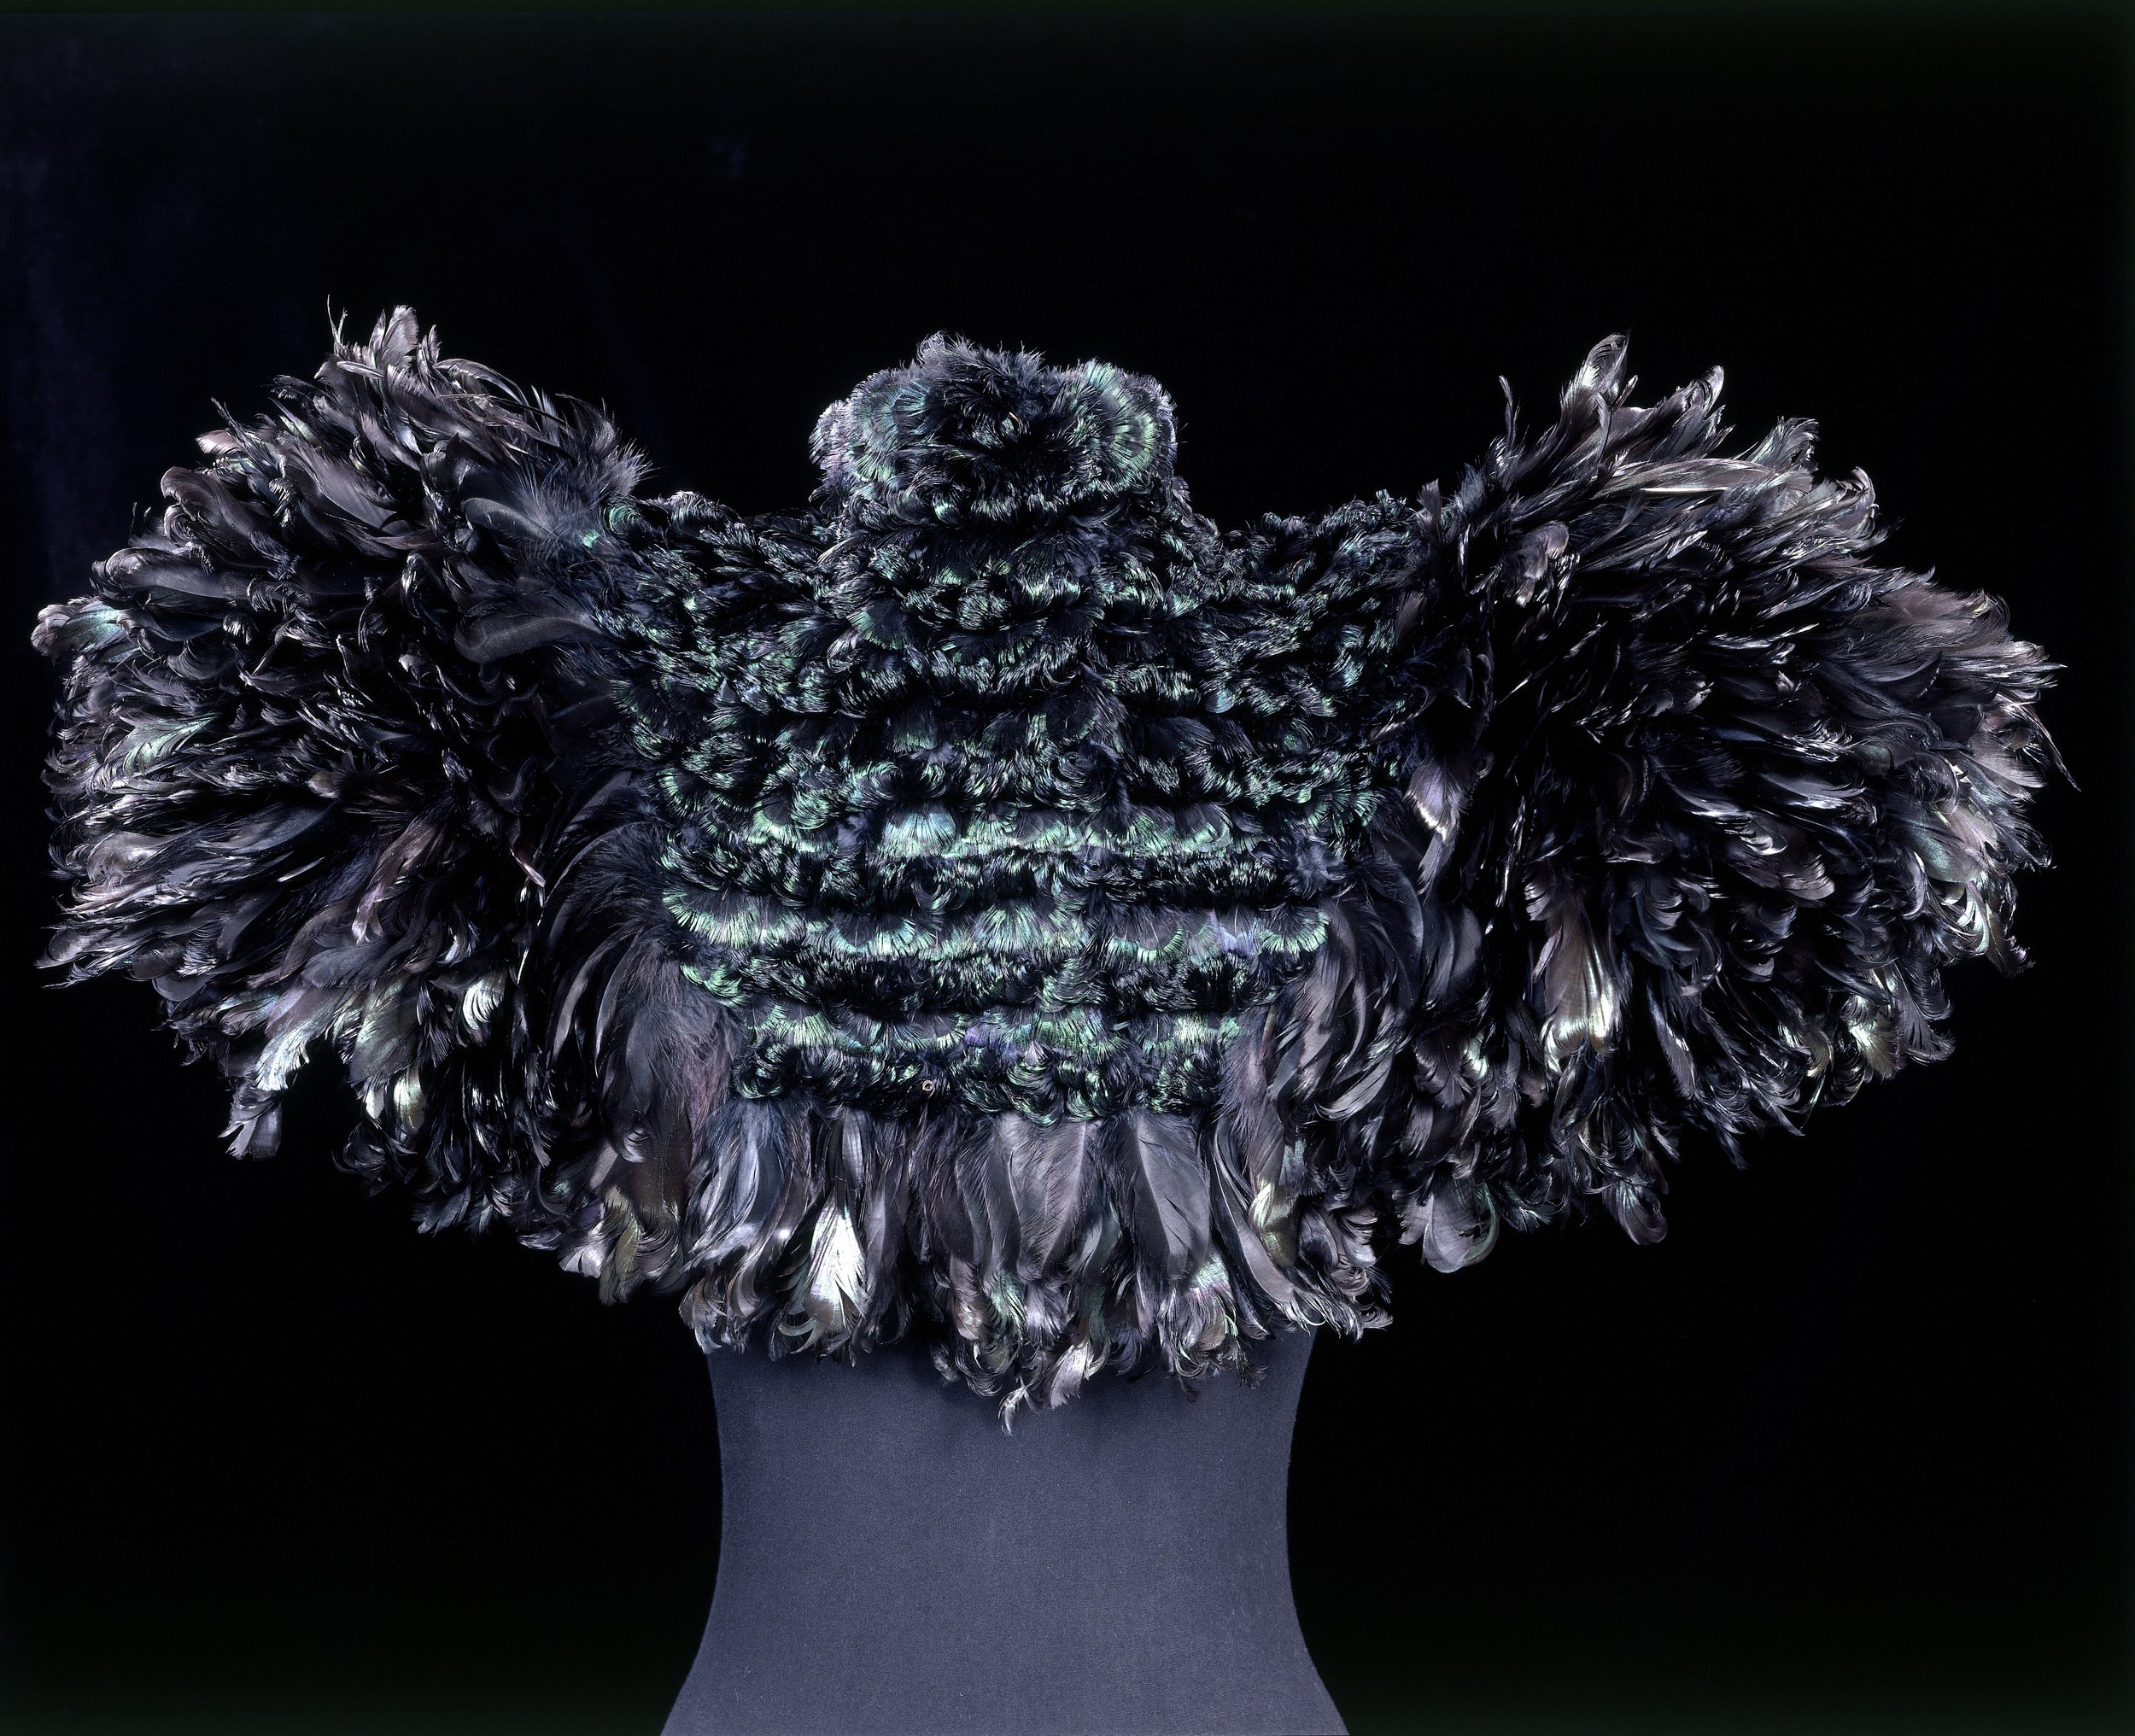 Cape of curled cockerel feathers, Auguste Champot, France, ca. 1895 © Victoria and Albert Museum, London. Photo courtesy Victoria and Albert Museum Press Office.